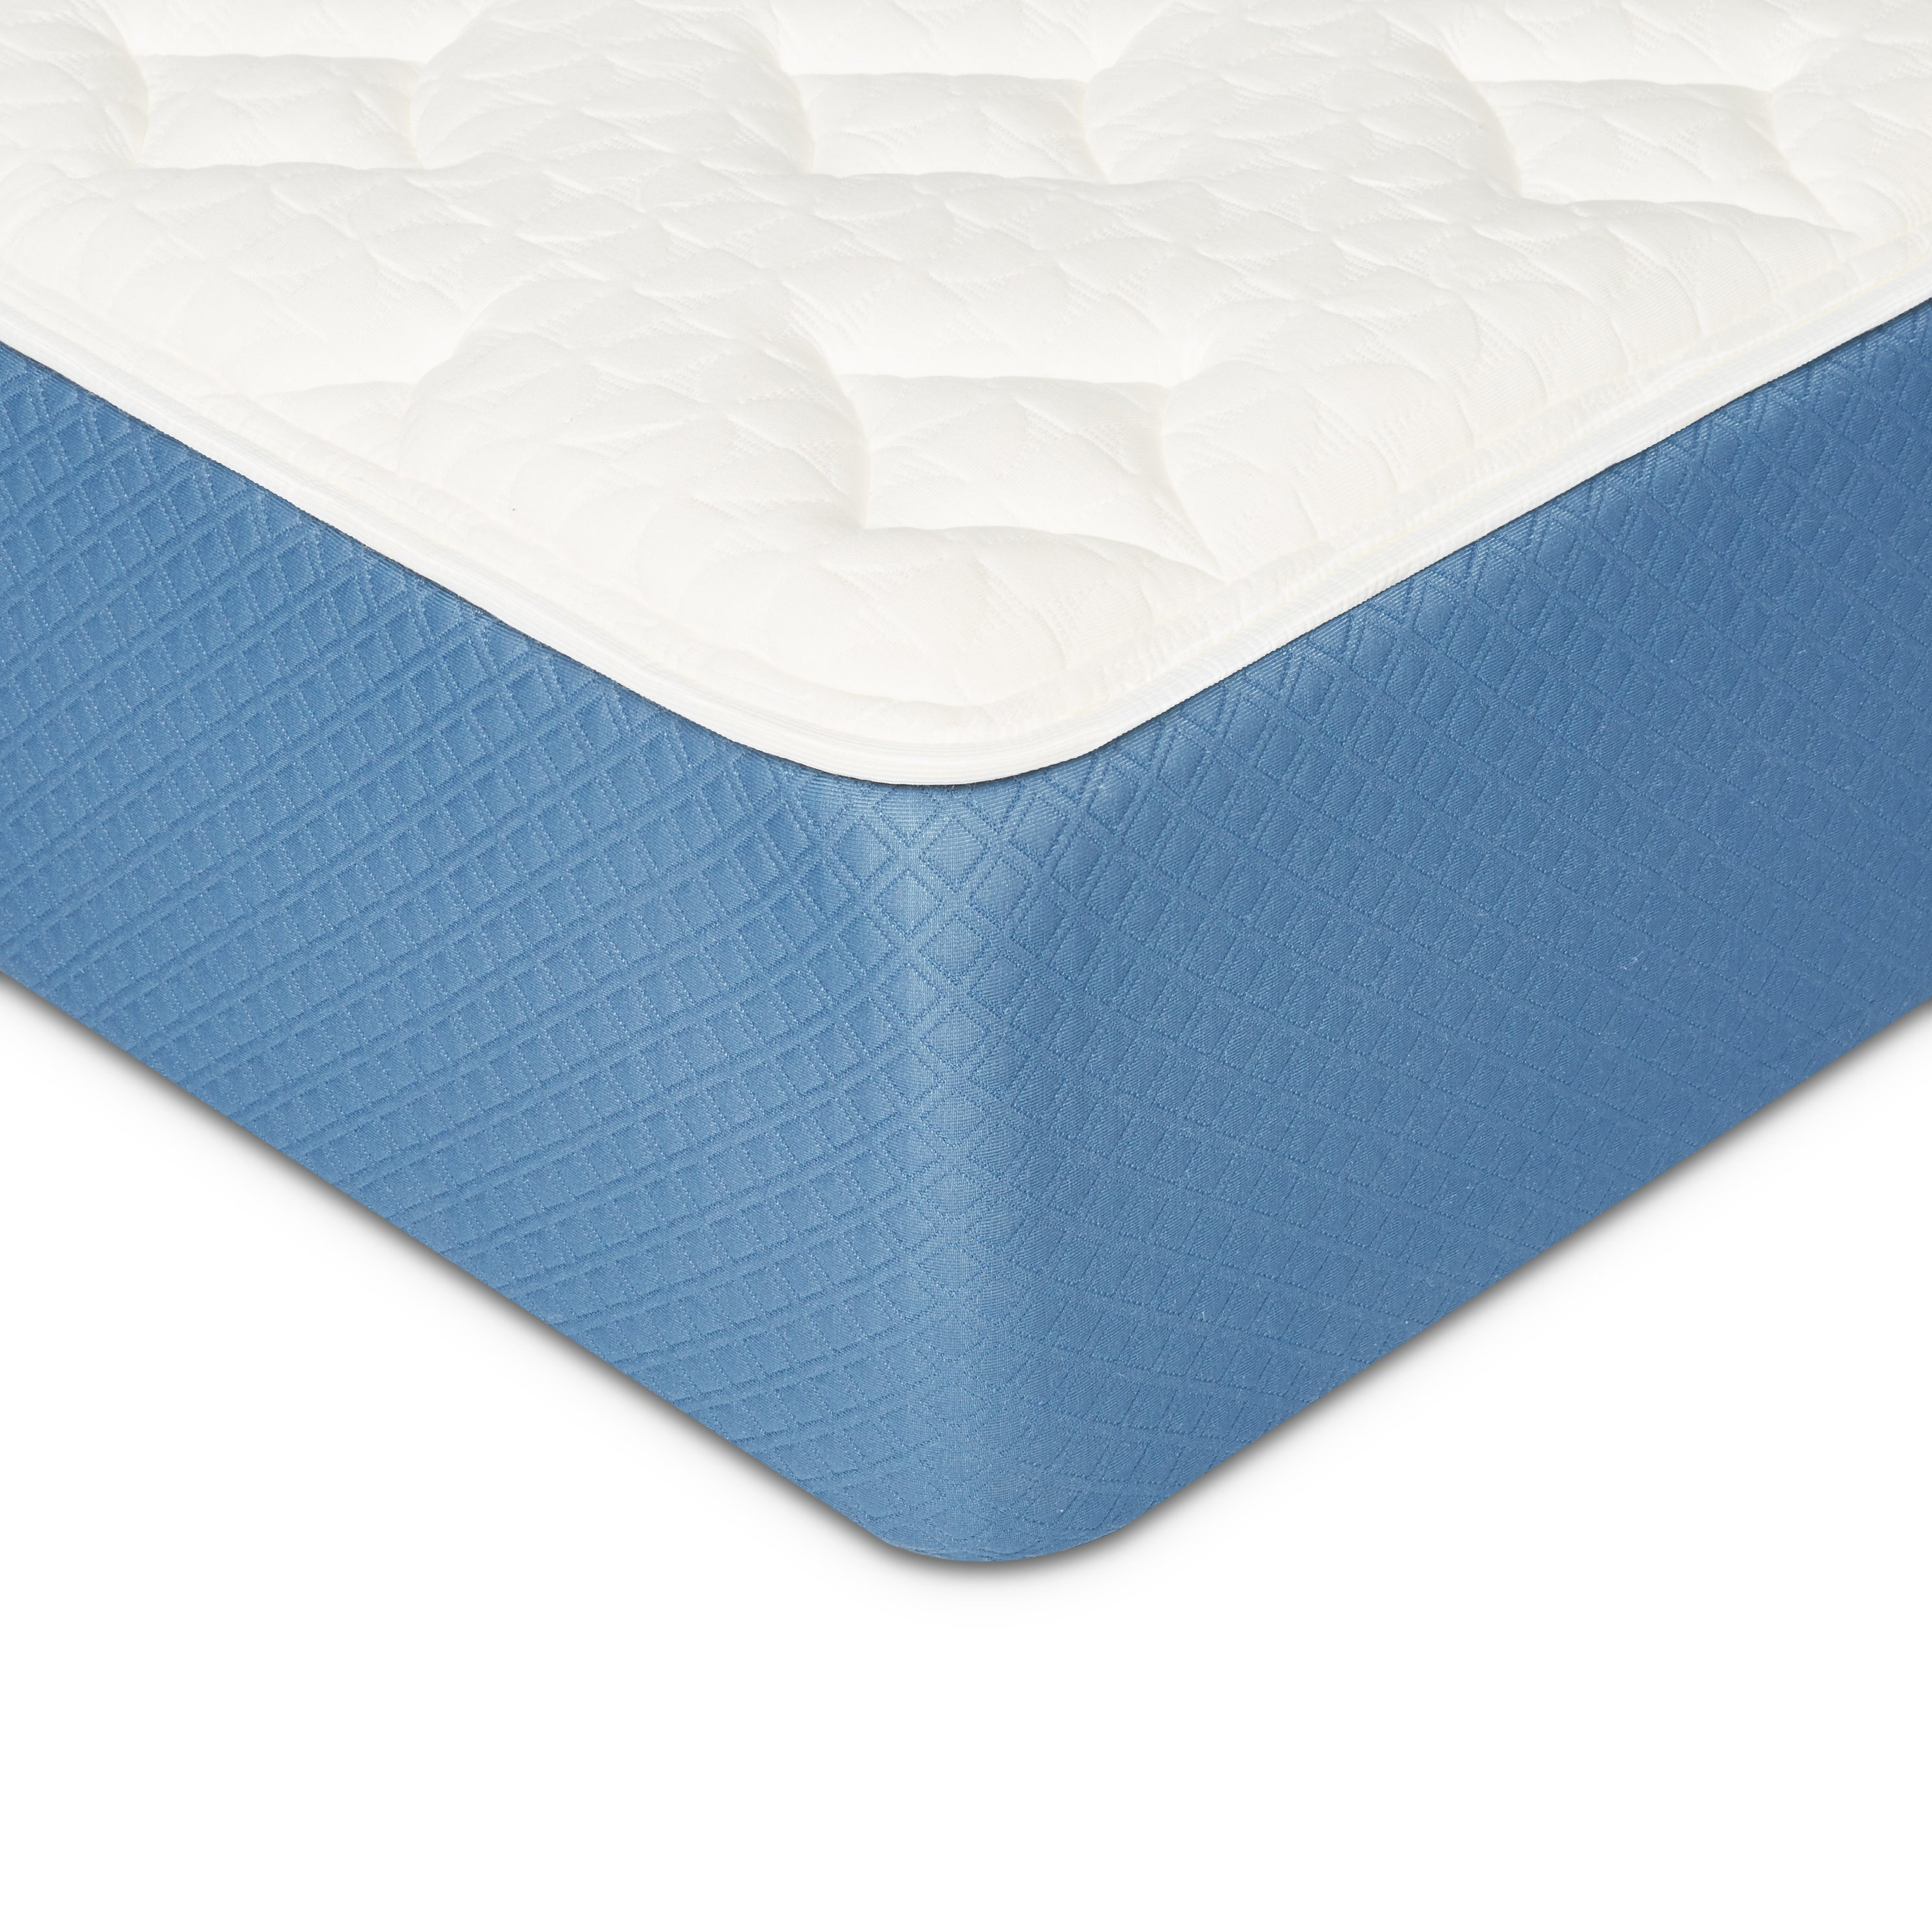 gazette s gentleman buying plush top guide person heavy for mattress sealy pillow